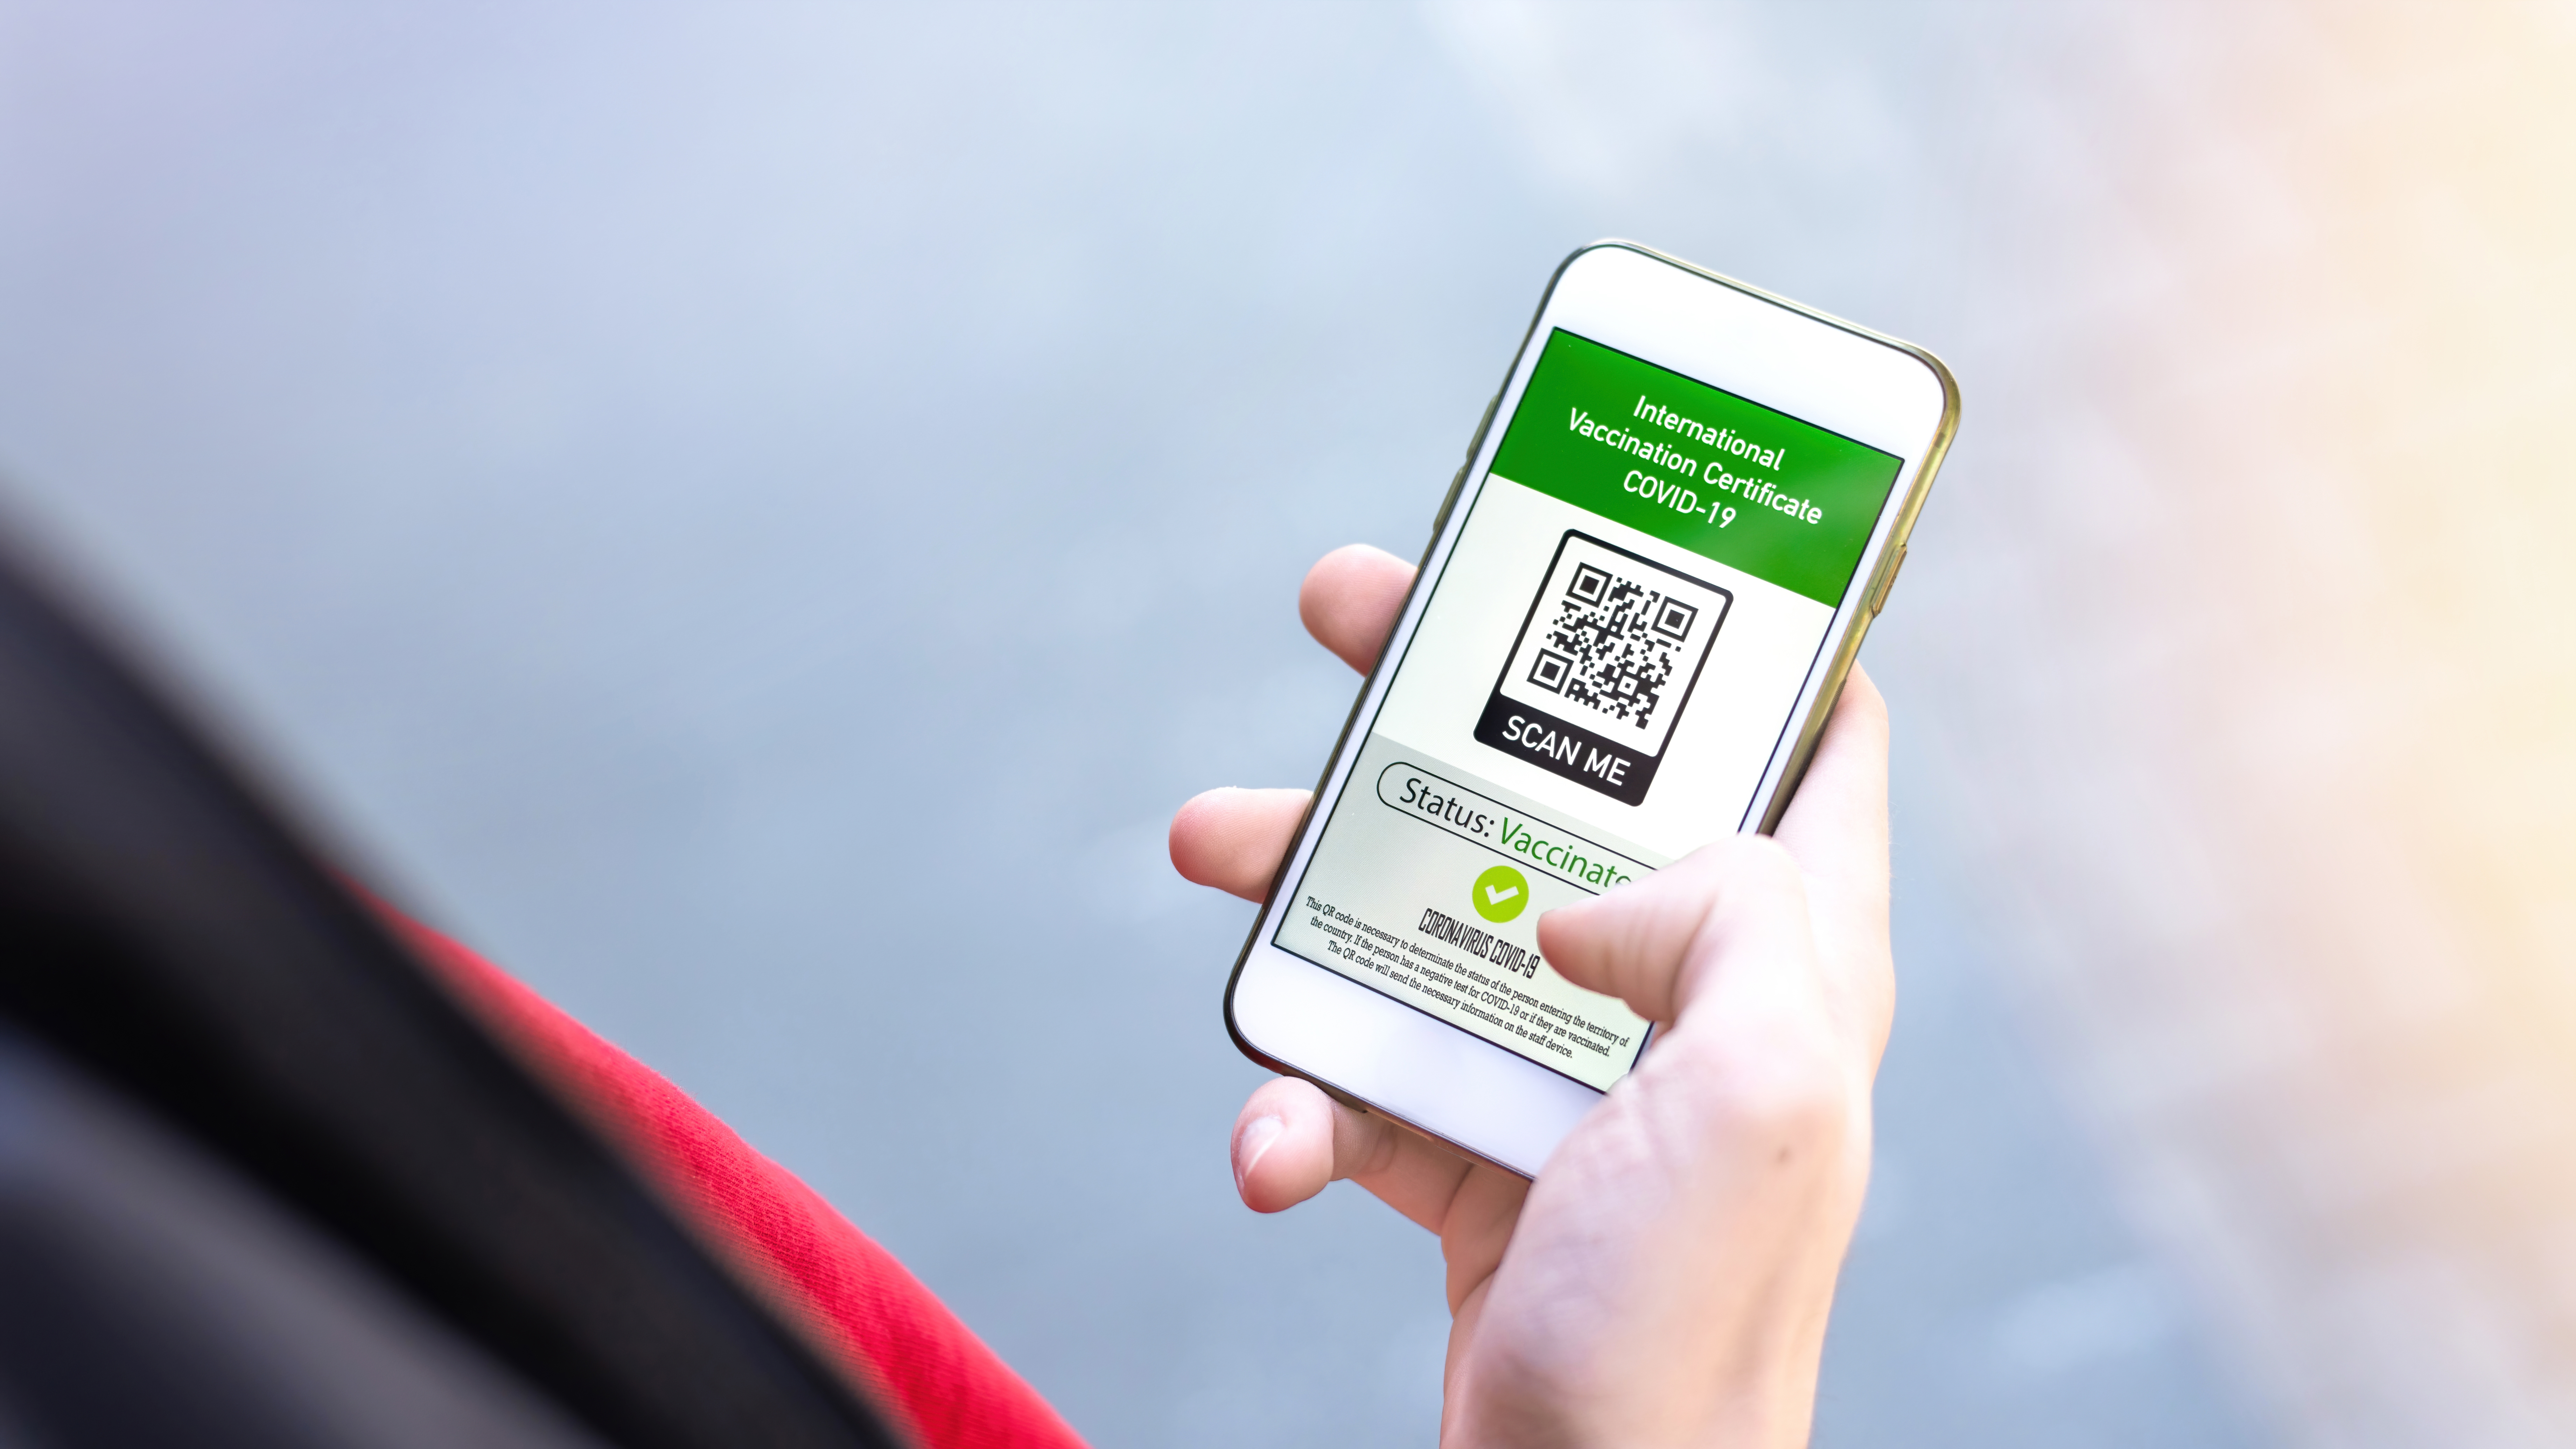 male-hand-holding-smartphone-with-international-vaccination-certificate-covid19-qr-code